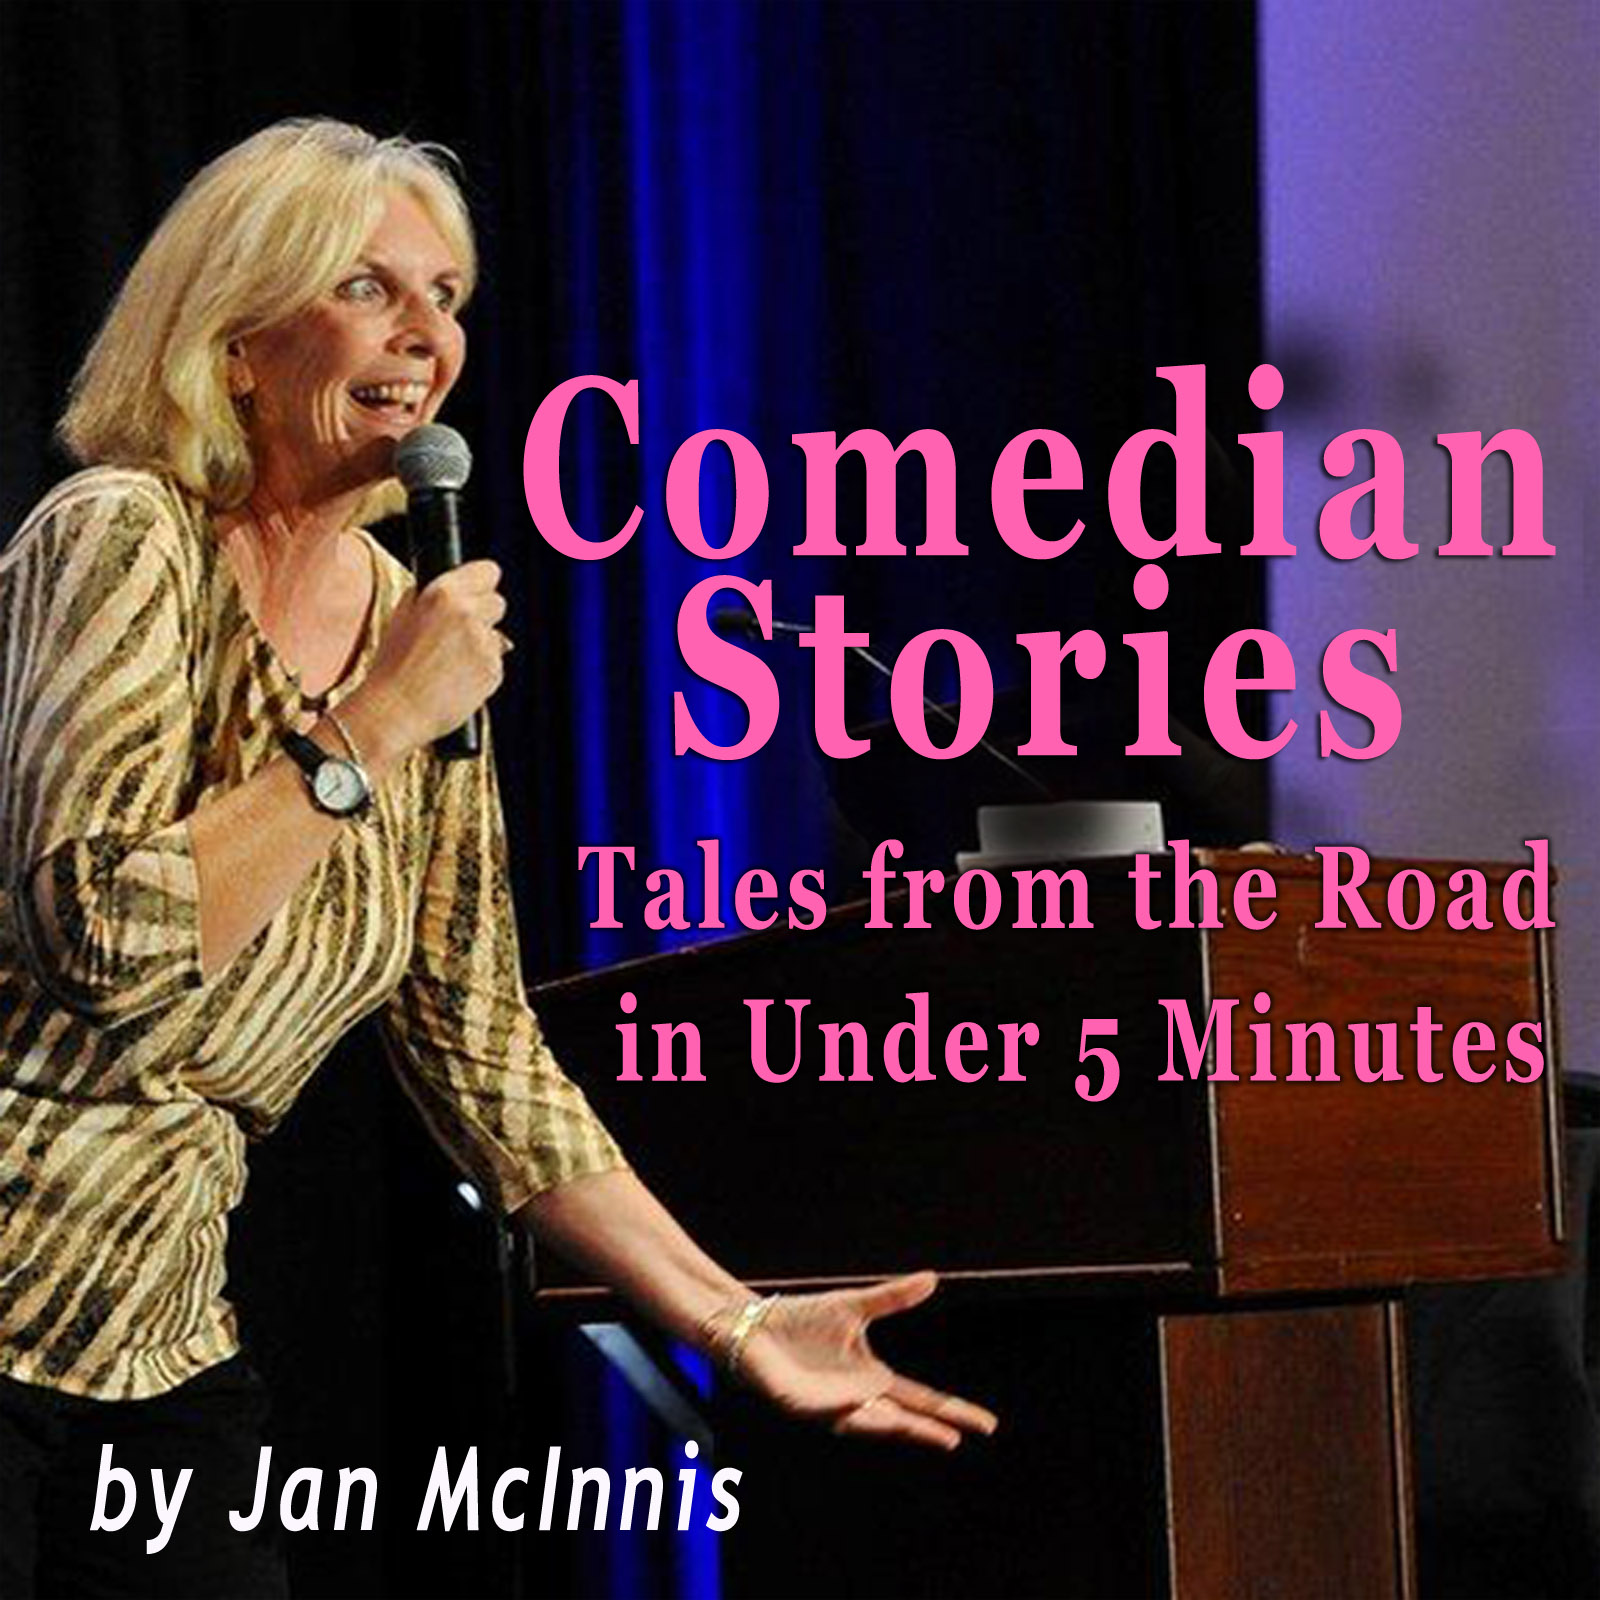 Caption: Comedian Stories, Credit: Comedian Jan McInnis